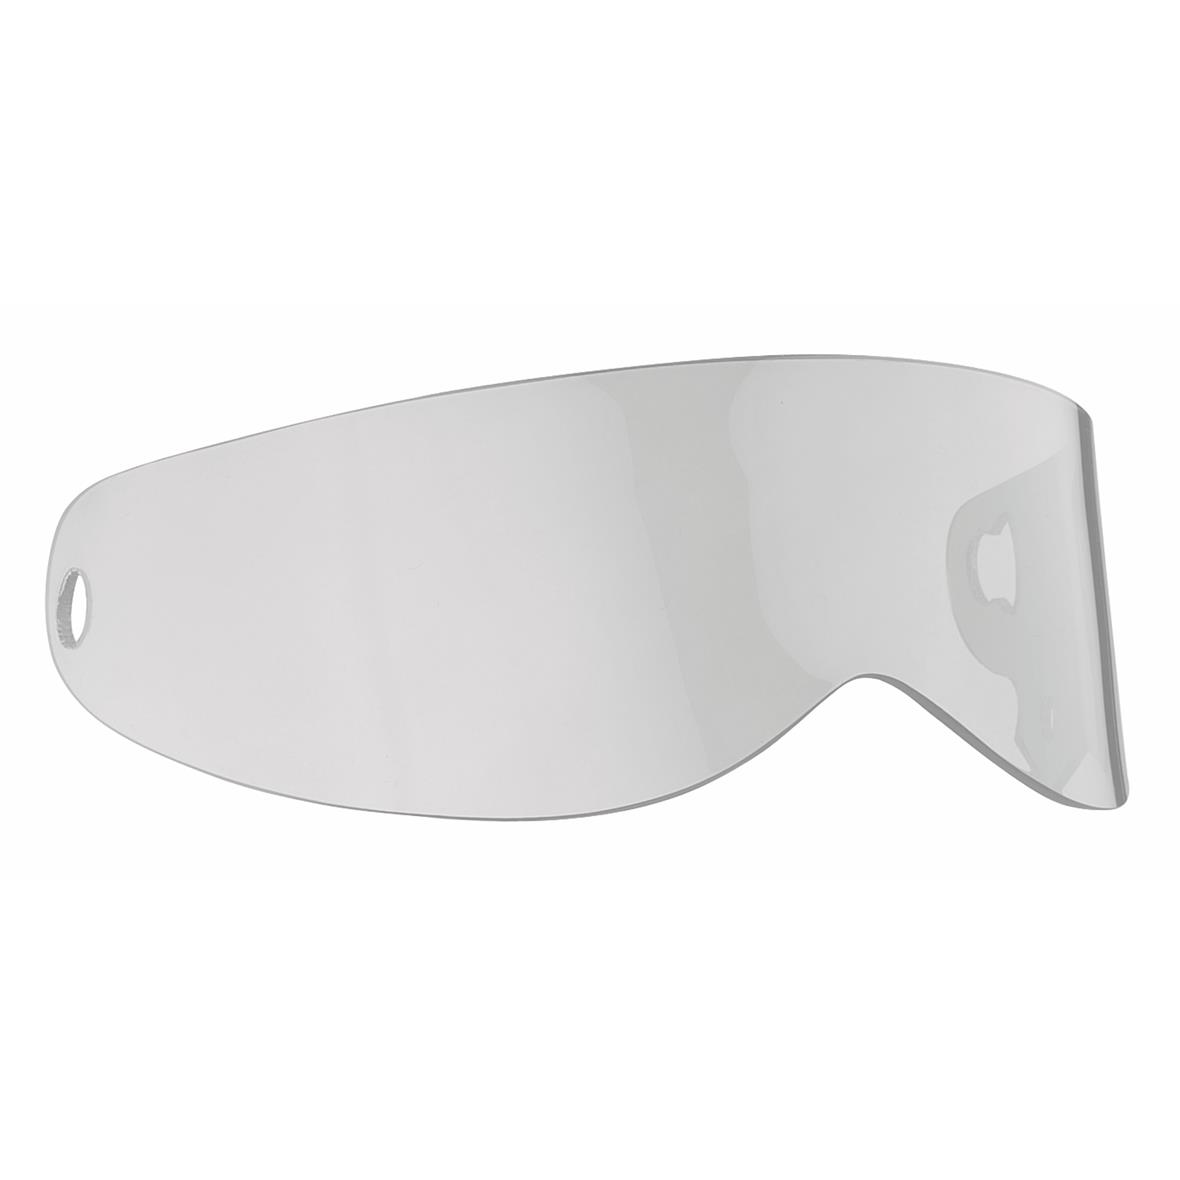 Product Image for 'Visor BANDIT XXR/RX8/SS/CrystalTitle'